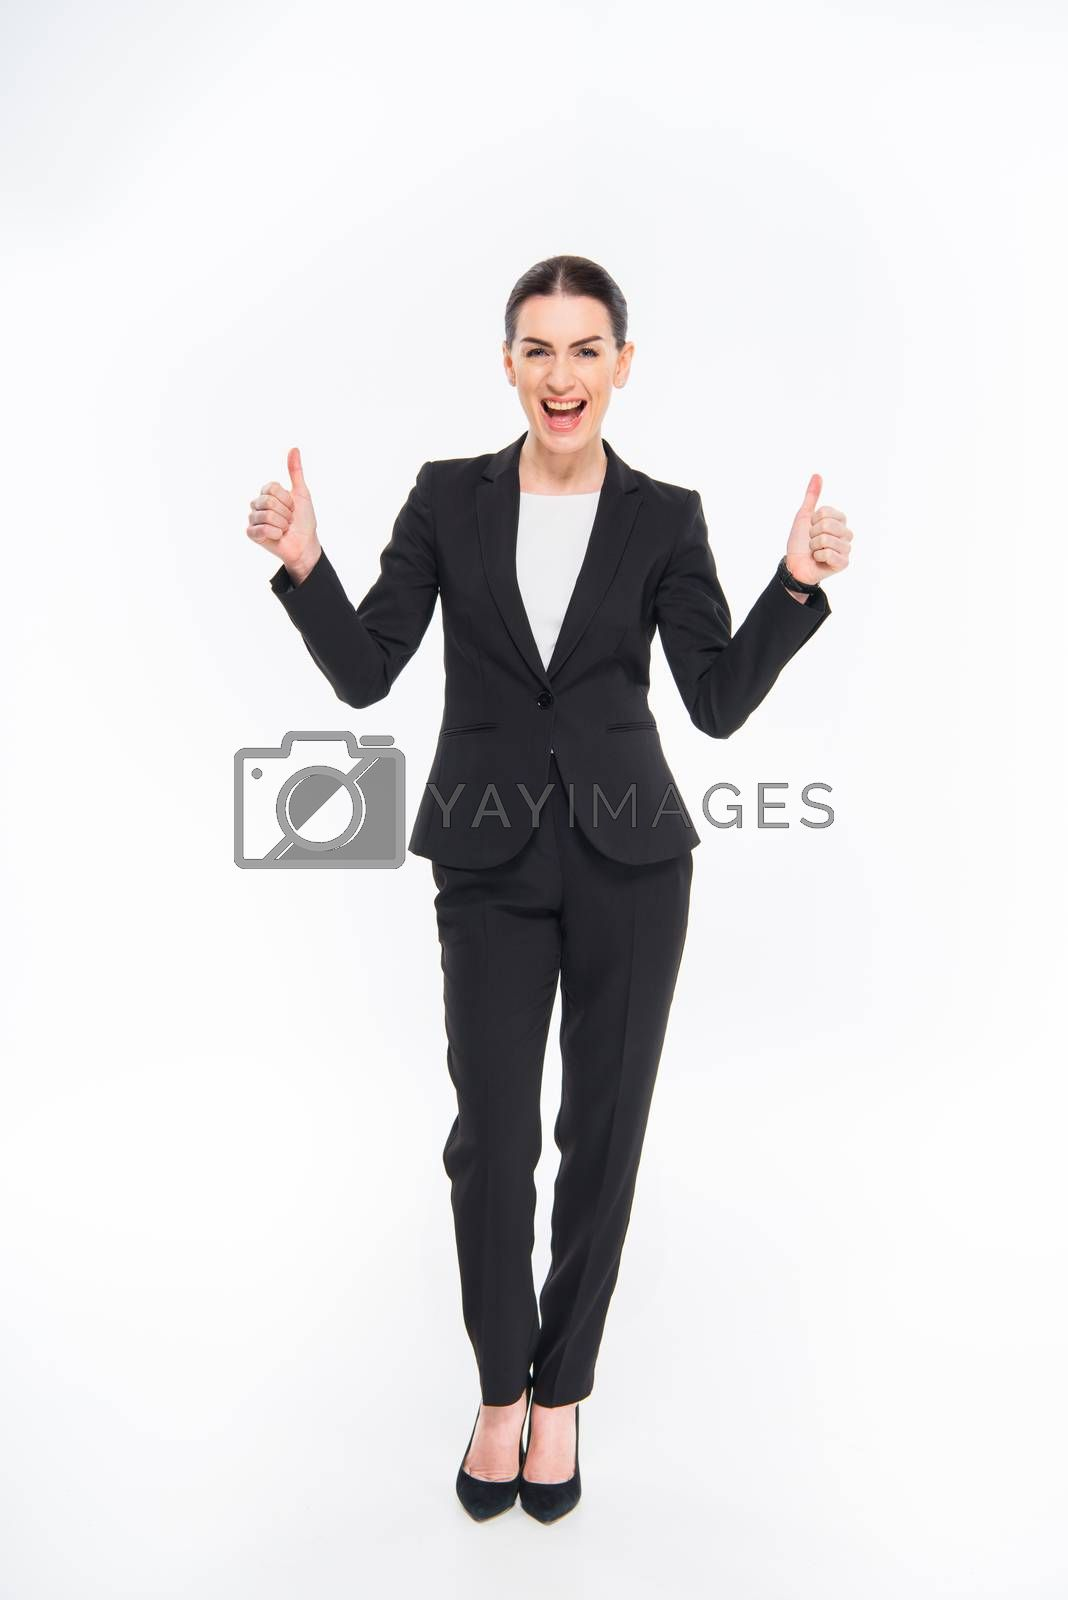 Royalty free image of Businesswoman showing thumbs up by LightFieldStudios